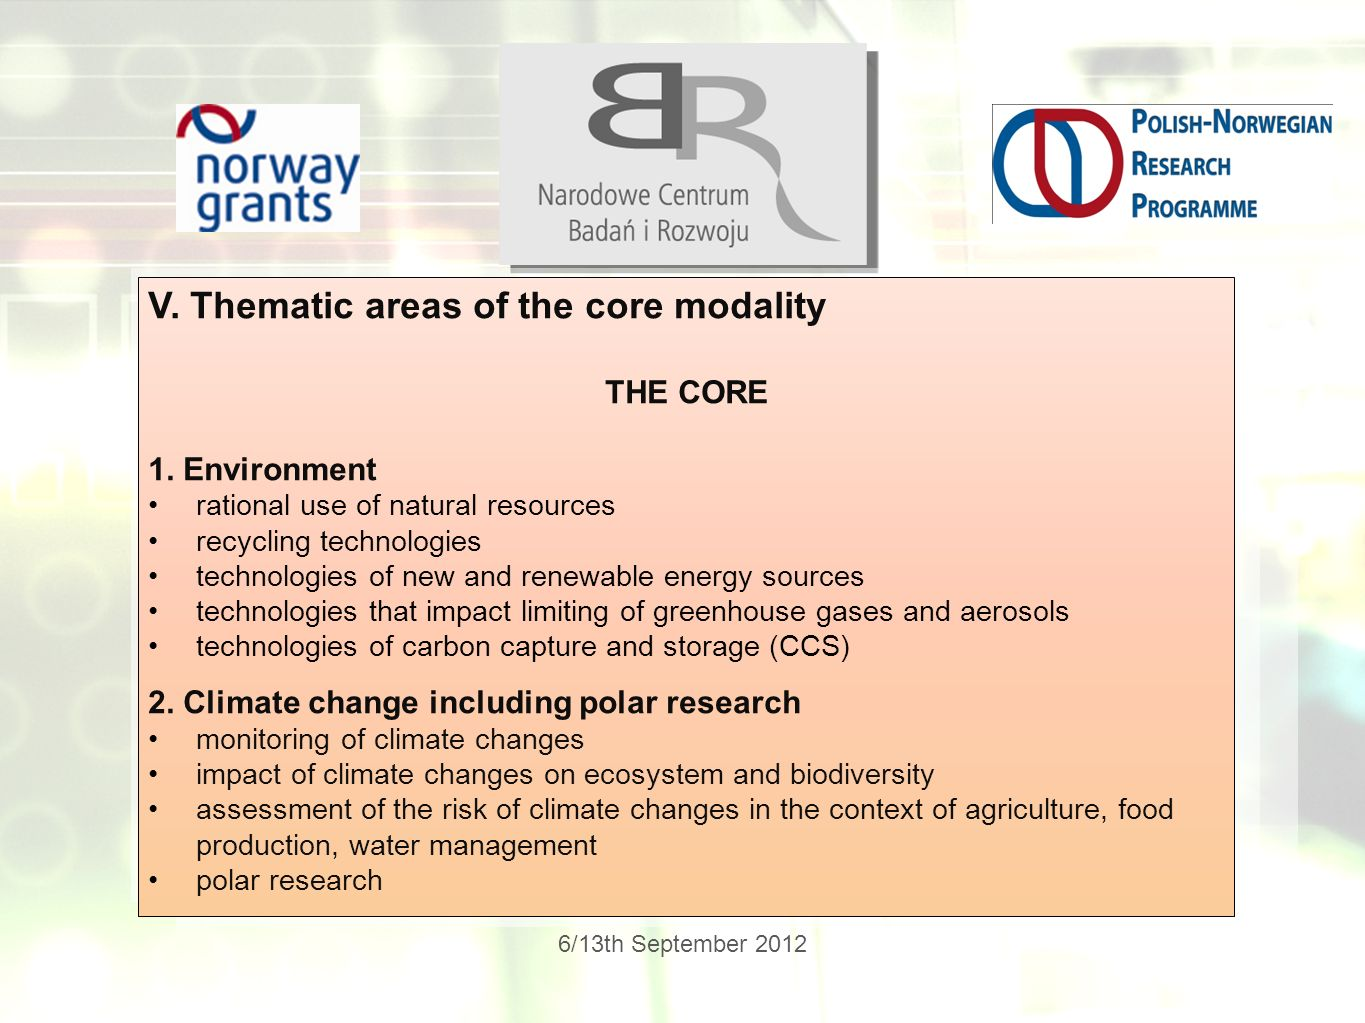 6/13th September 2012 V. Thematic areas of the core modality THE CORE 1. Environment rational use of natural resources recycling technologies technolo